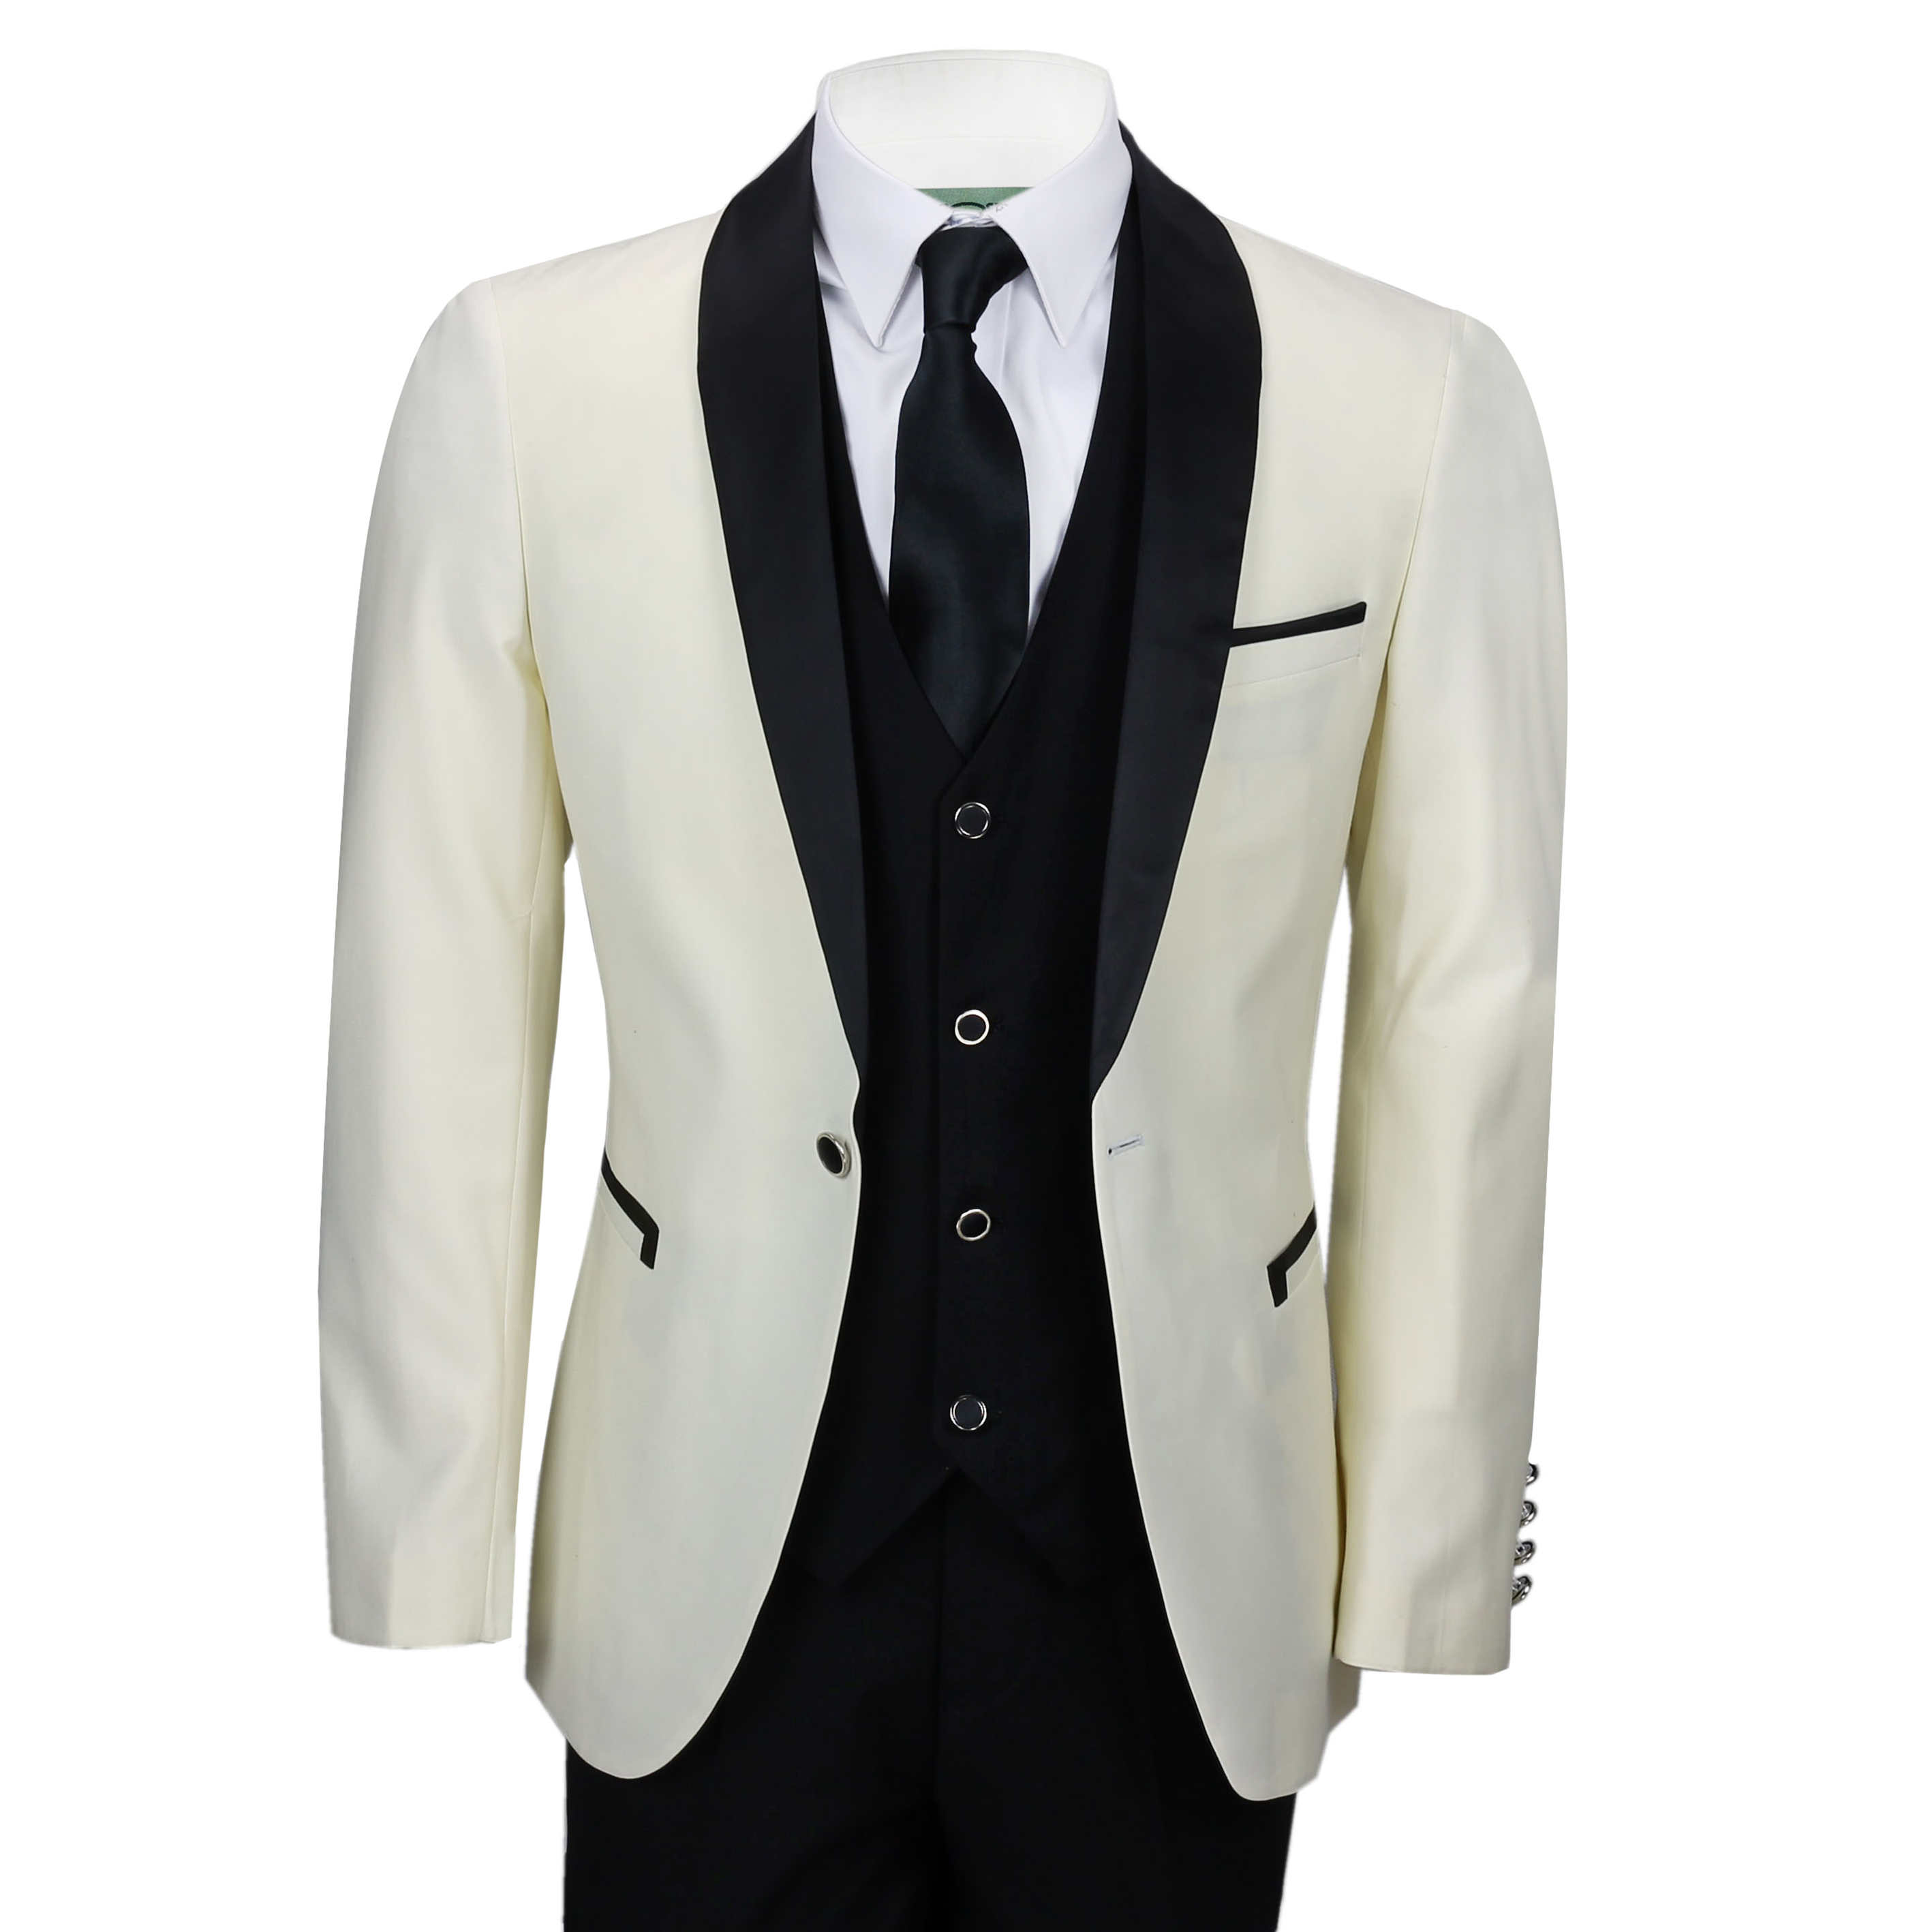 f1c544fb Details about Mens Ivory Black 3 Piece Tuxedo Suit Wedding Prom Grooms wear  Retro Tailored Fit